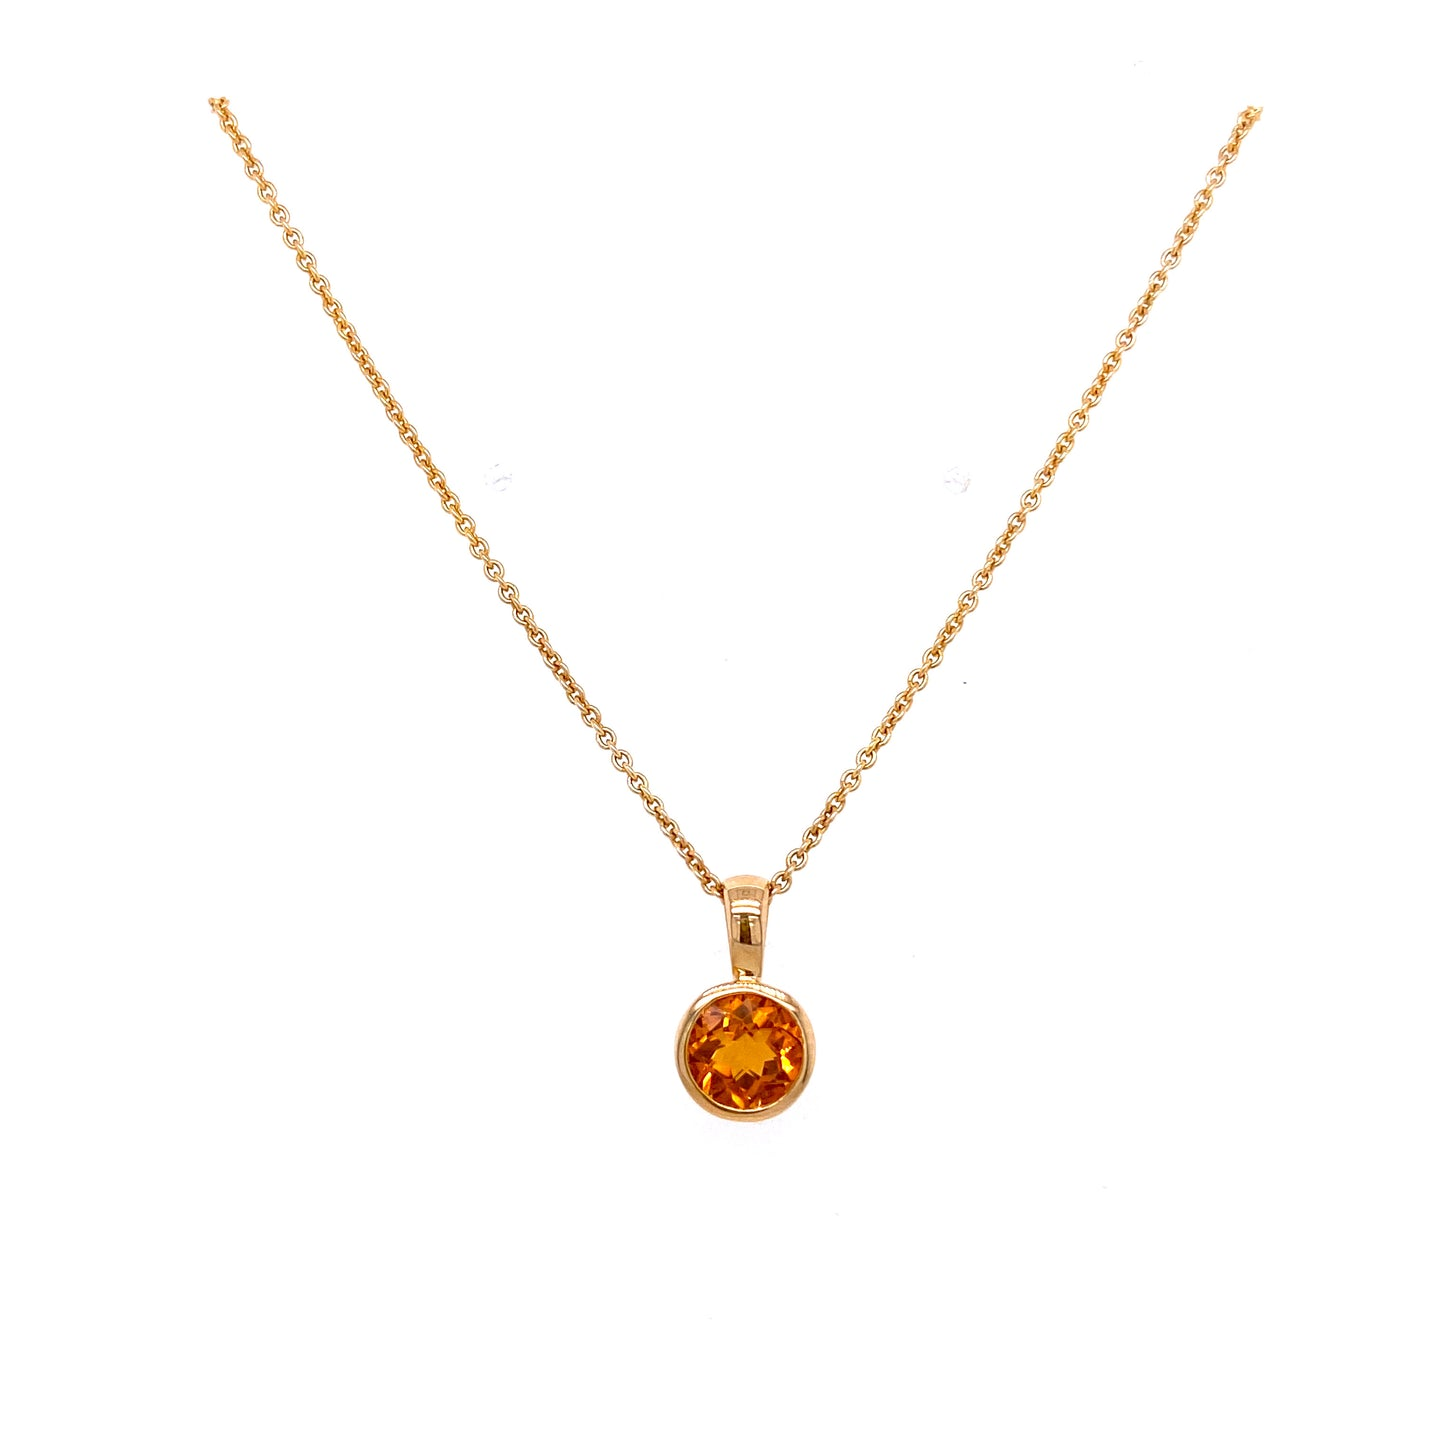 Bezel Set Citrine Necklace